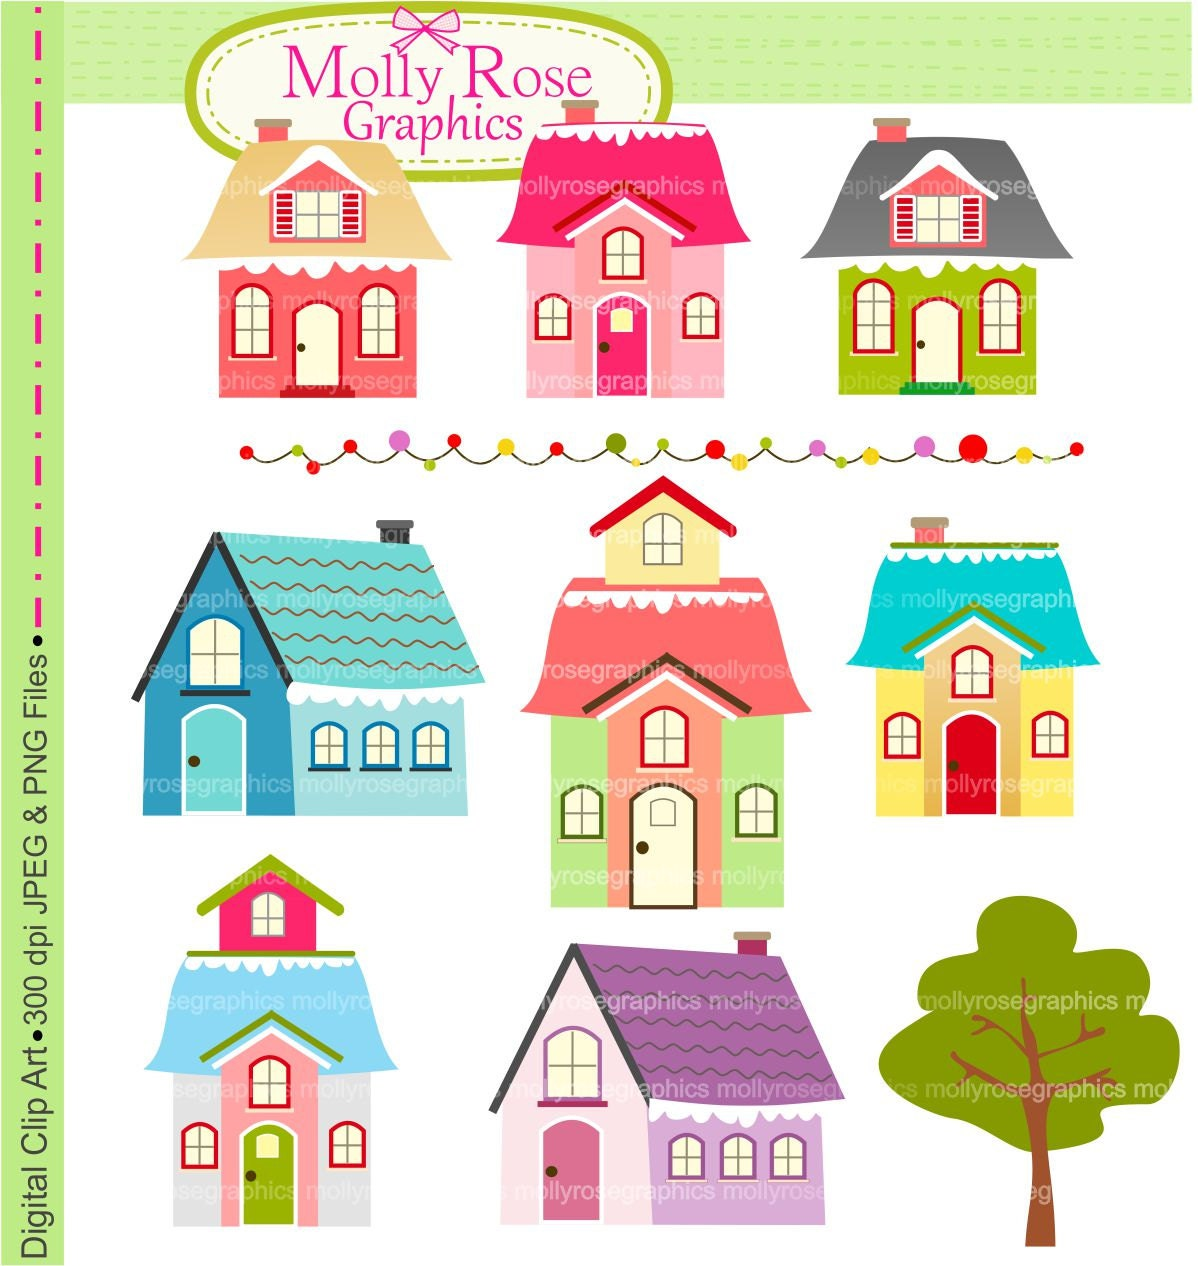 Sale house clip art houses clipart personal and small for Stationary tiny houses for sale